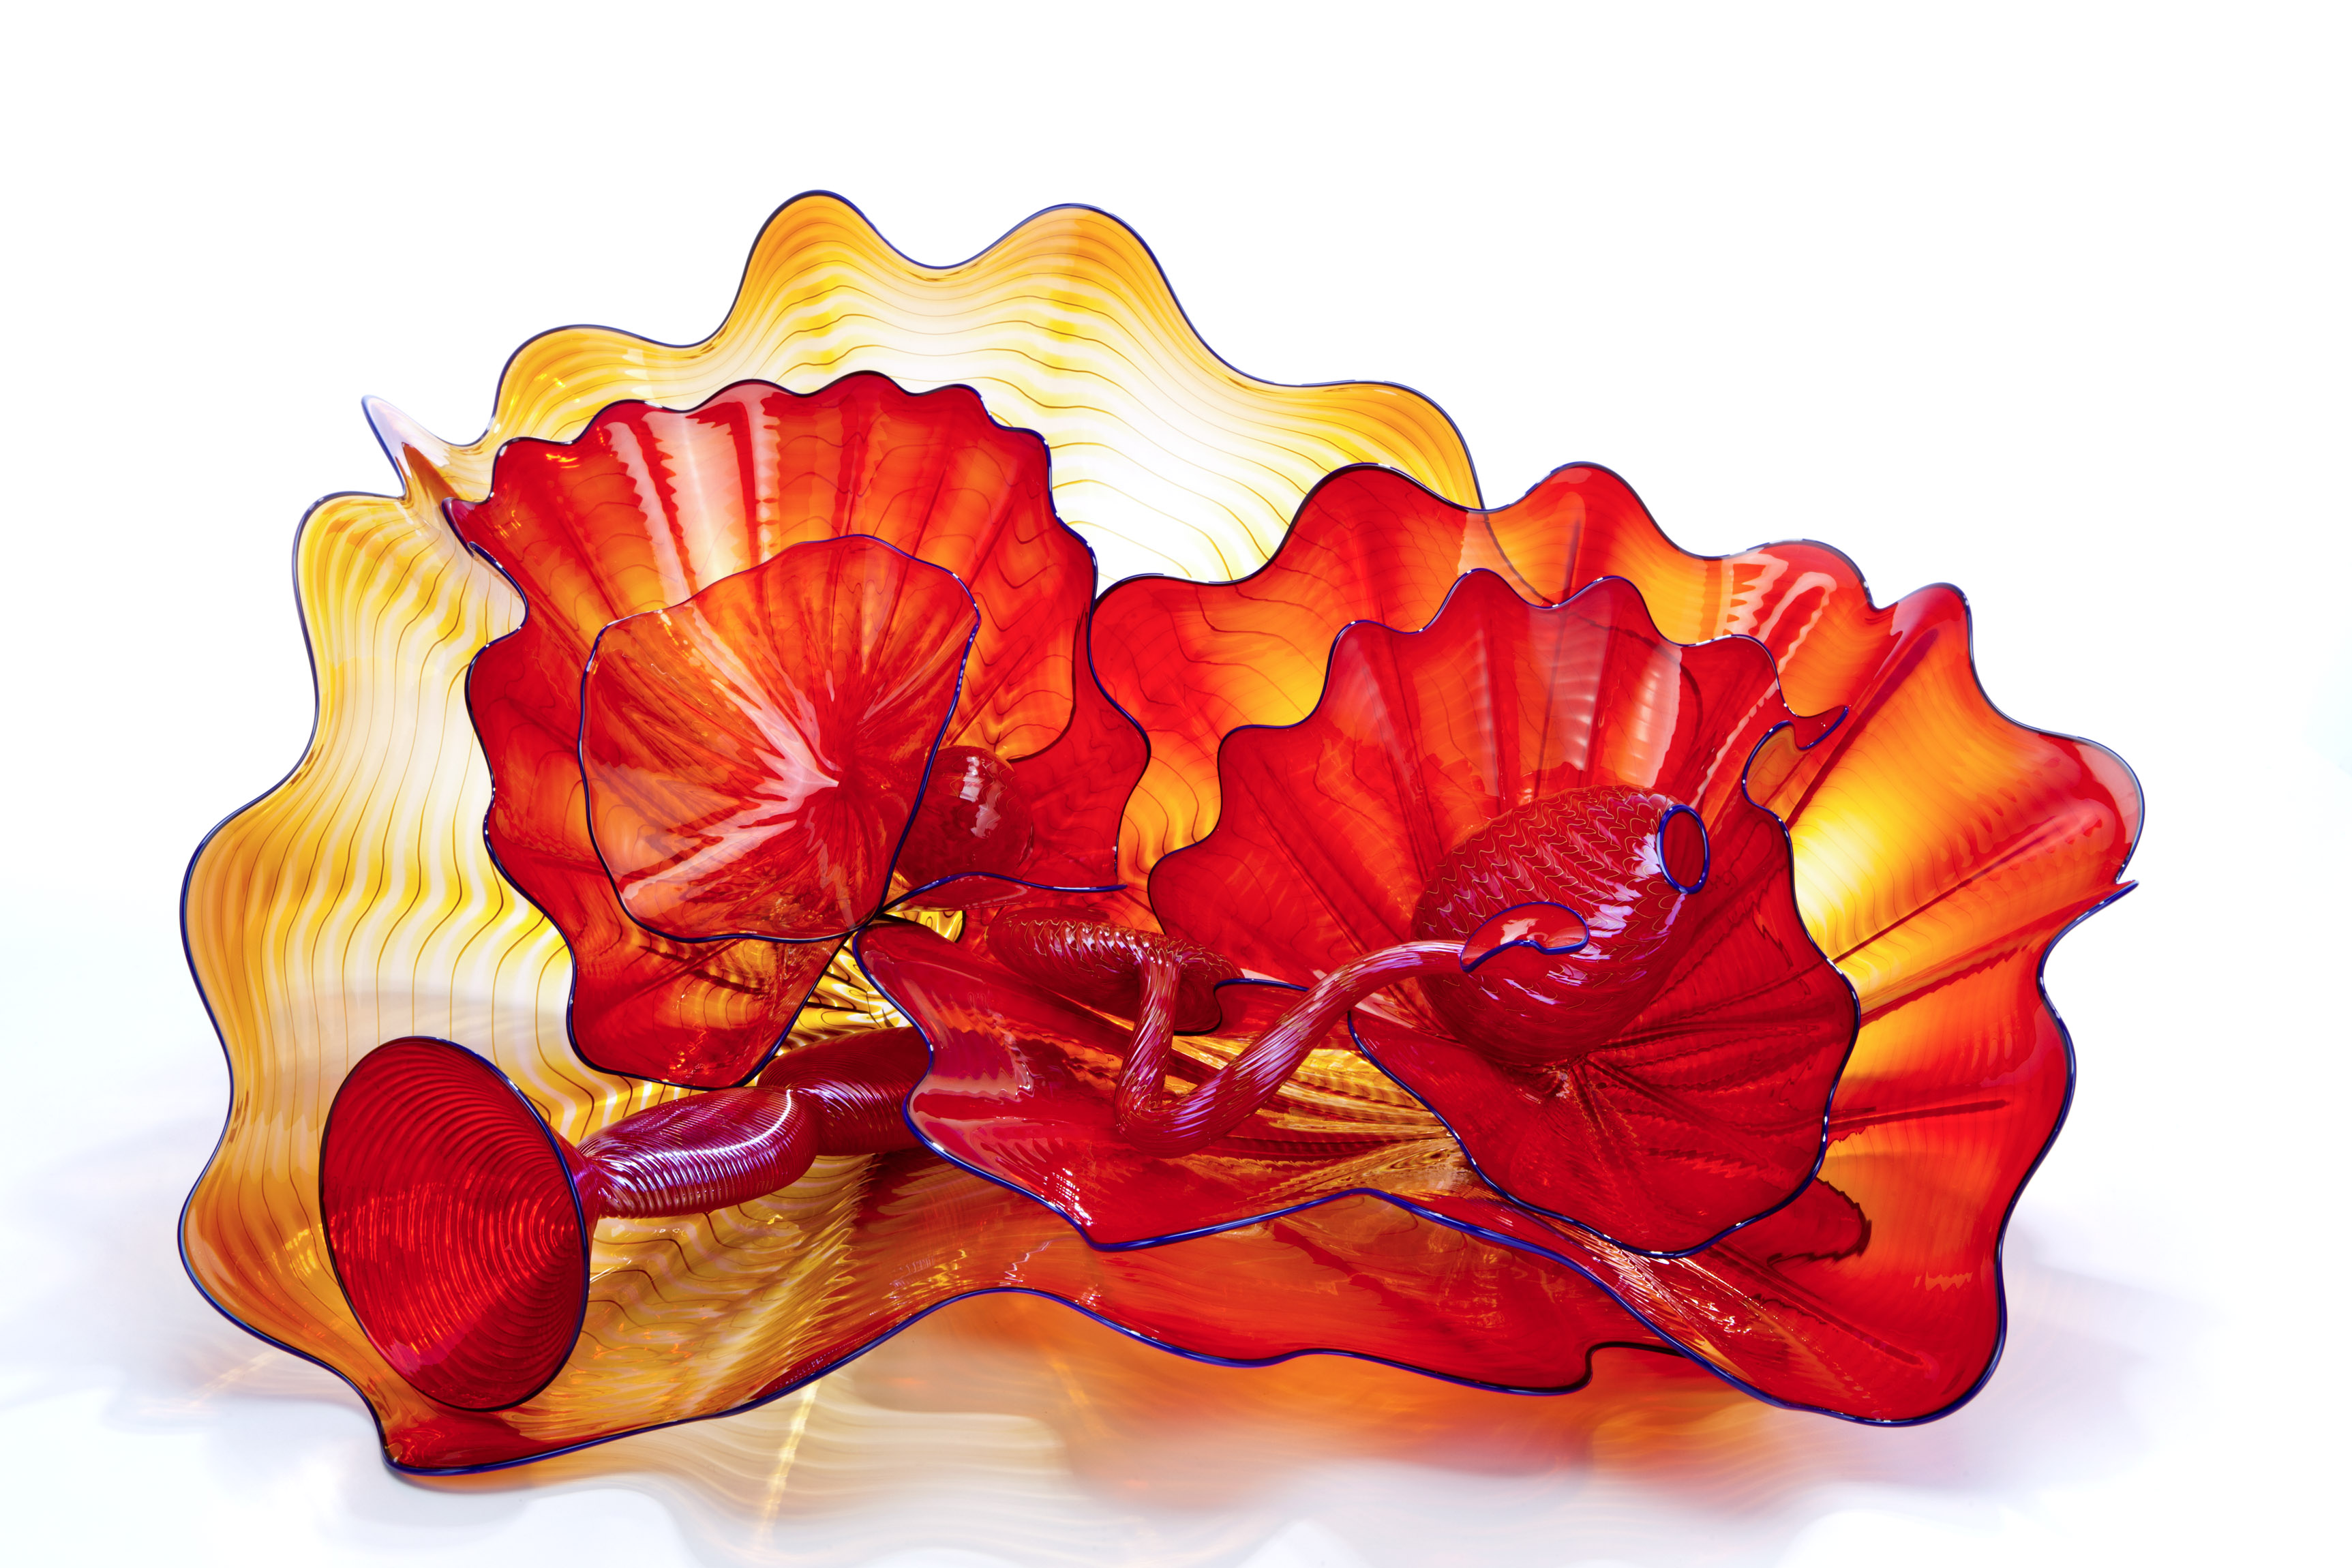 Dale Chihuly, Scarlet Persian Set with Cerulean Lip Wraps, 2012, 33 x 71 x 61 cm